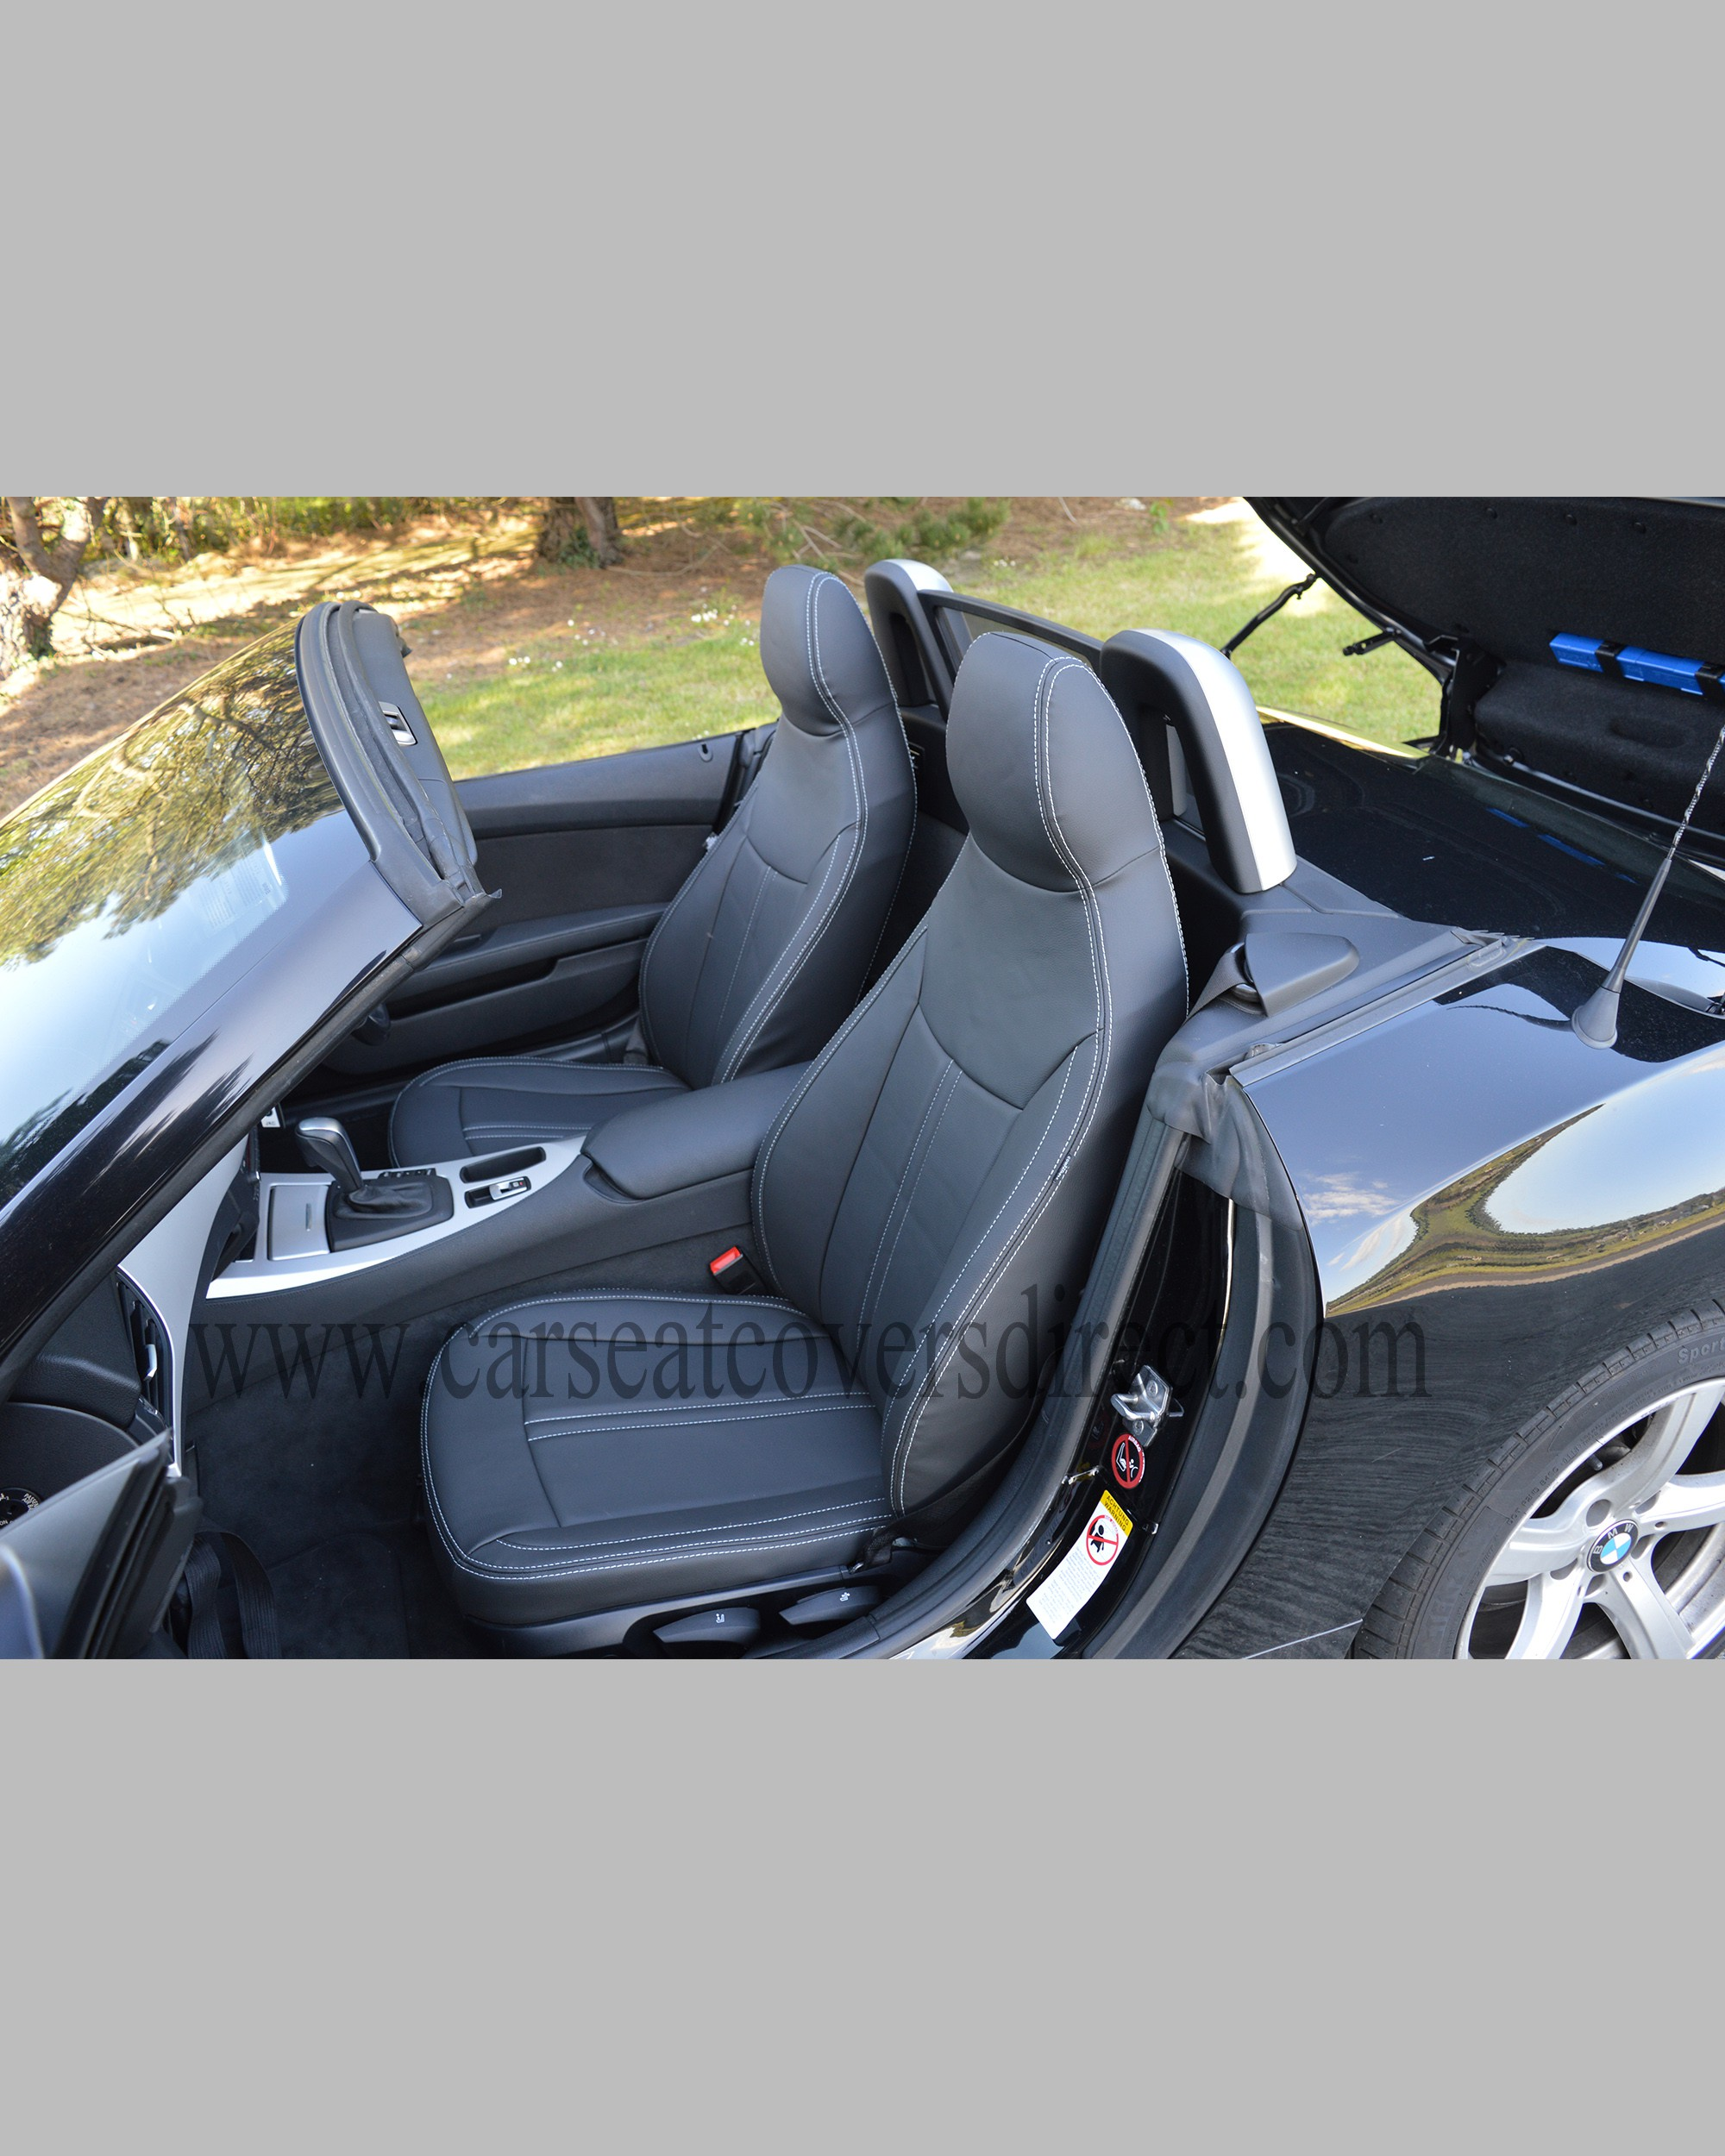 Bmw Z4 Car Cover: BMW Z4 E89 Tailored Waterproof Leather Look Seat Covers